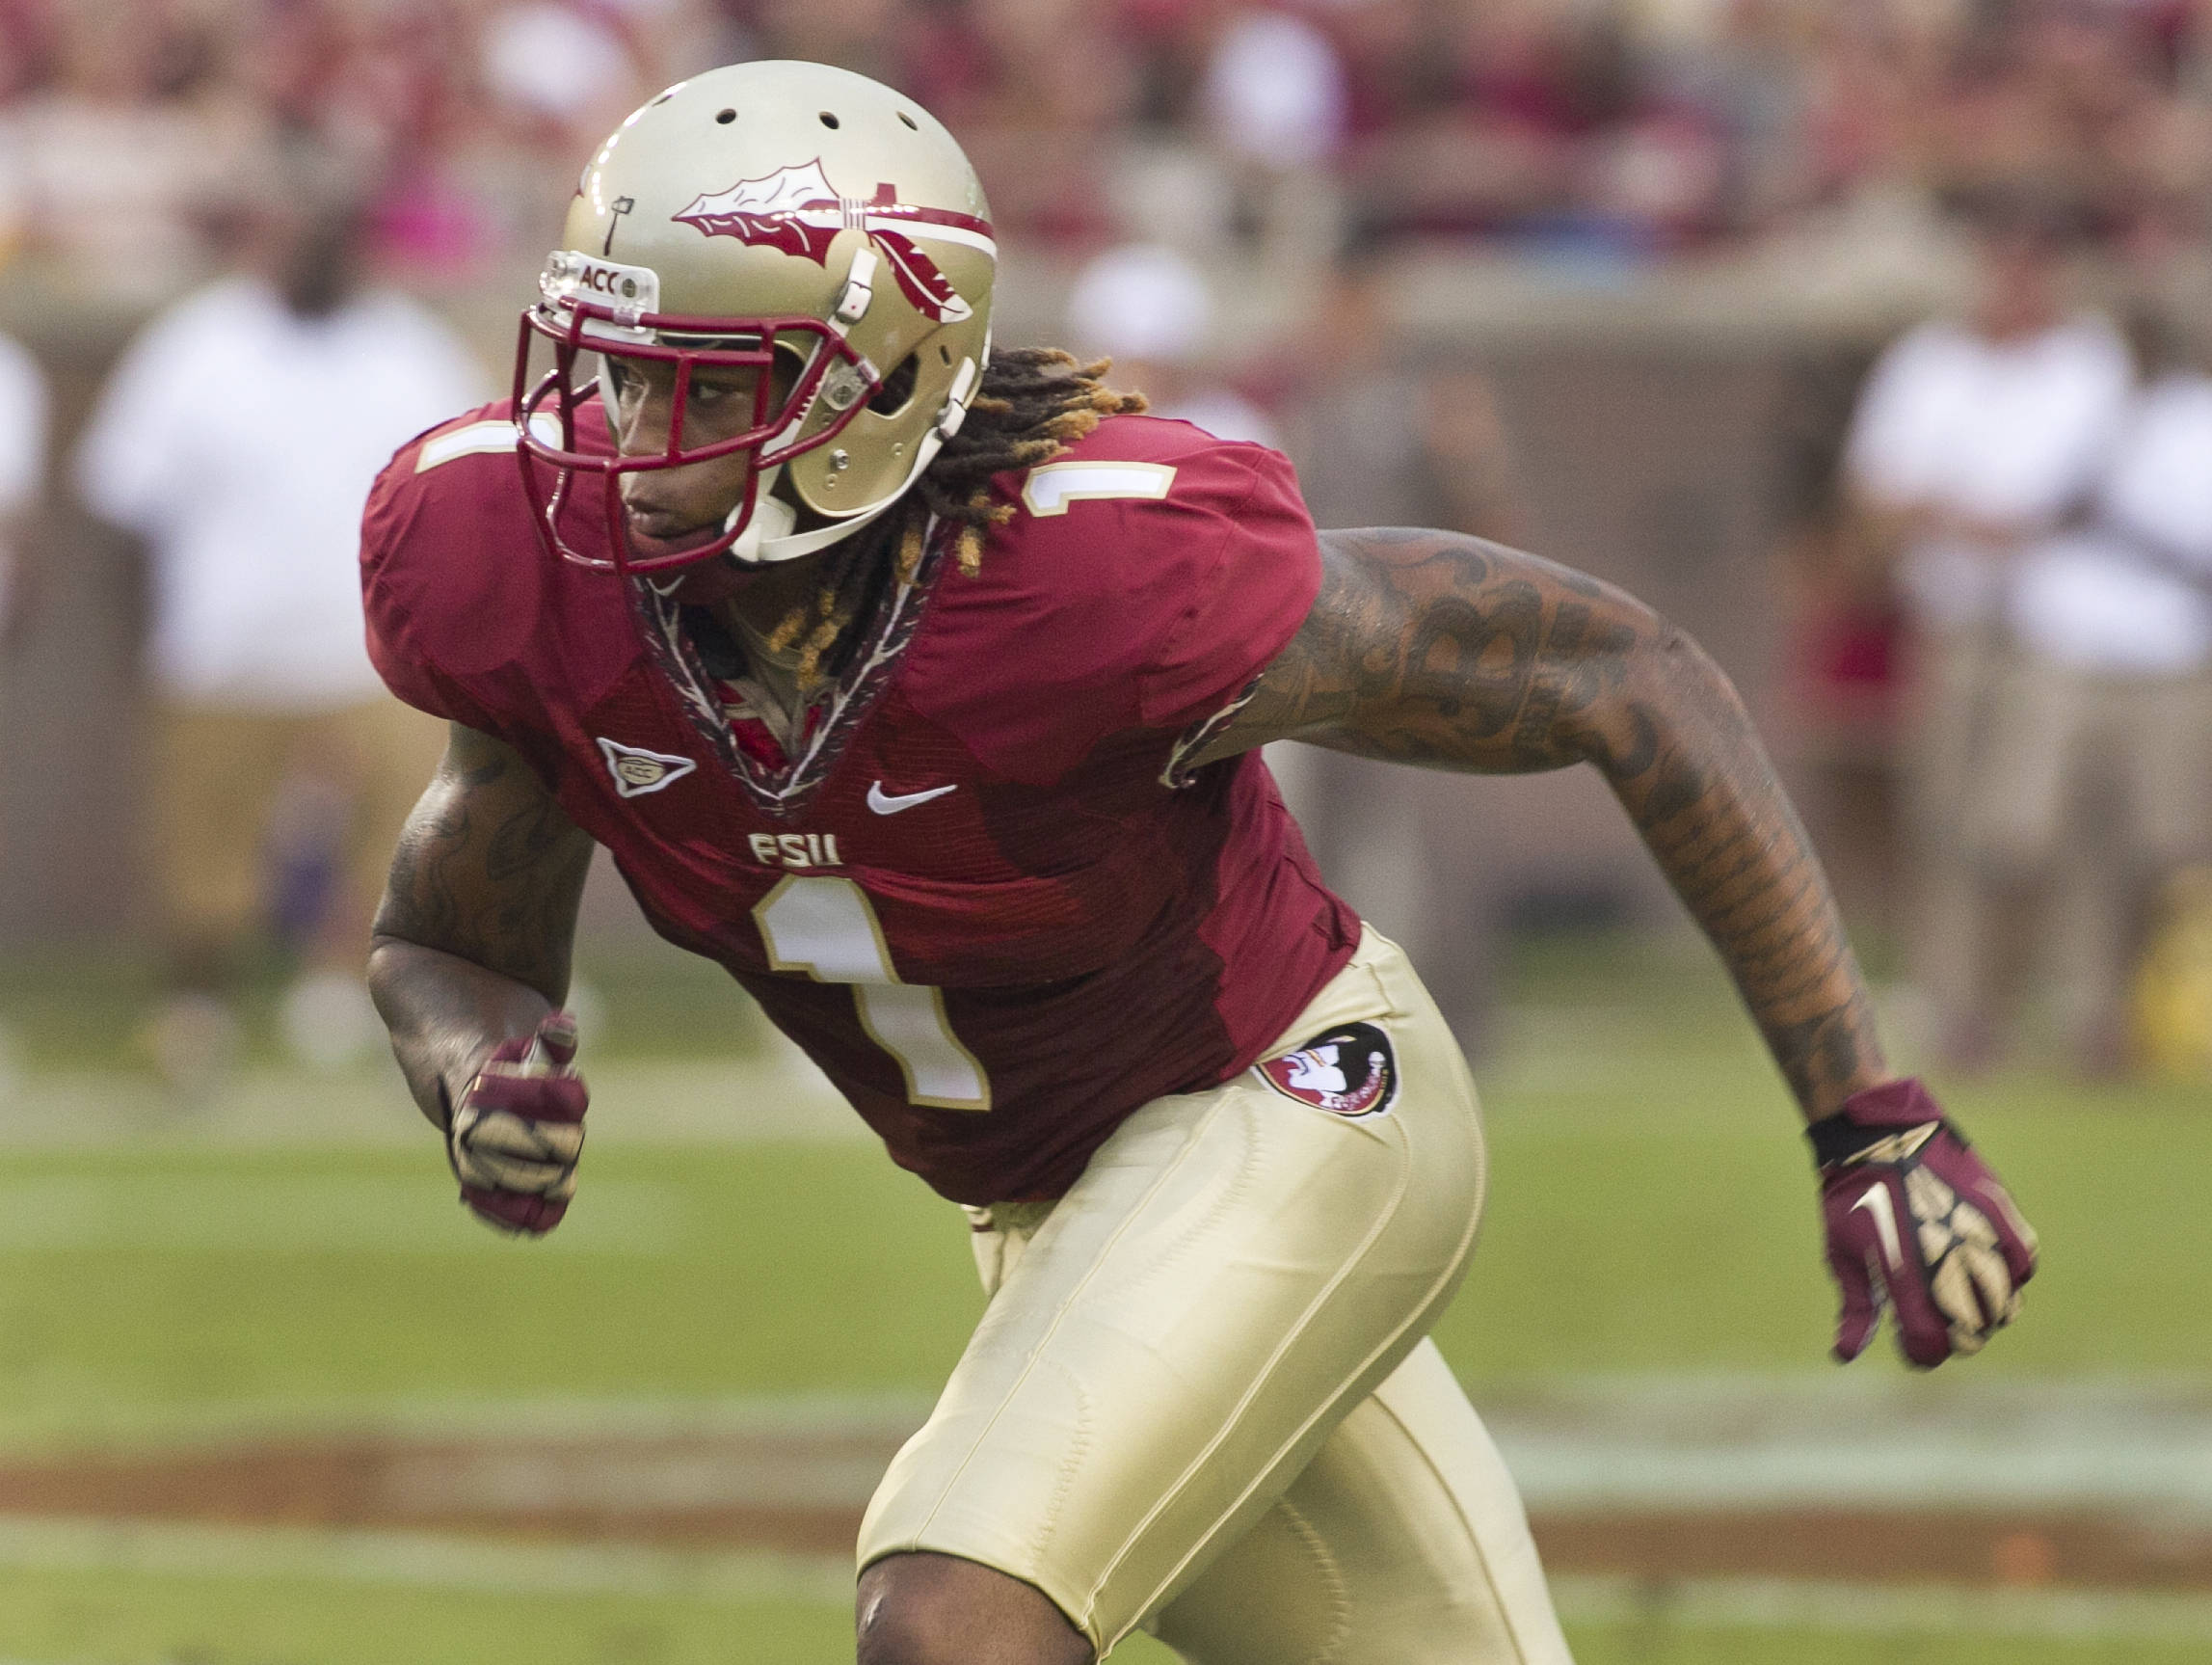 Kelvin Blenjamin (1),  FSU vs Savannah State, 9/8/12 (Photo by Steve Musco)